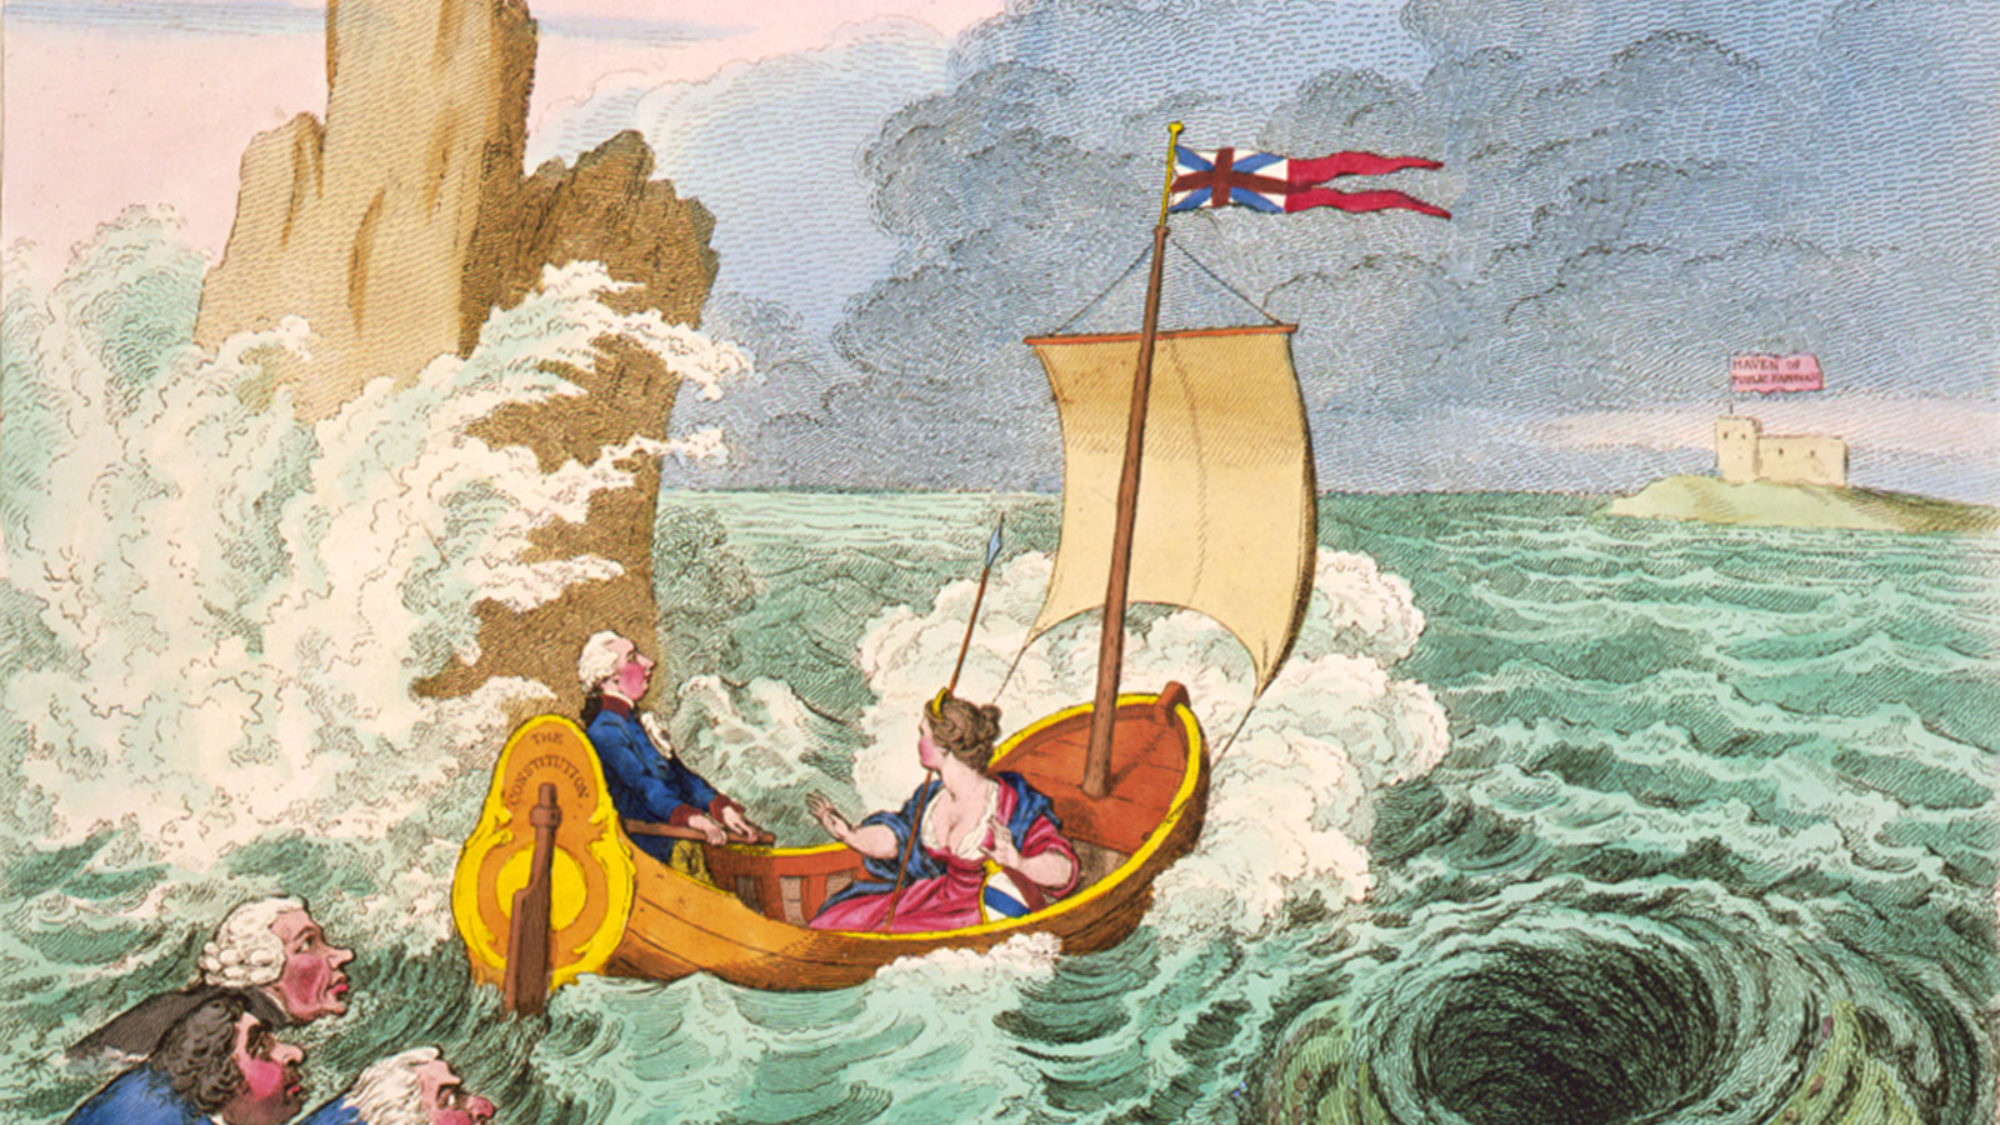 old drawing of man and woman in boat with a British flag